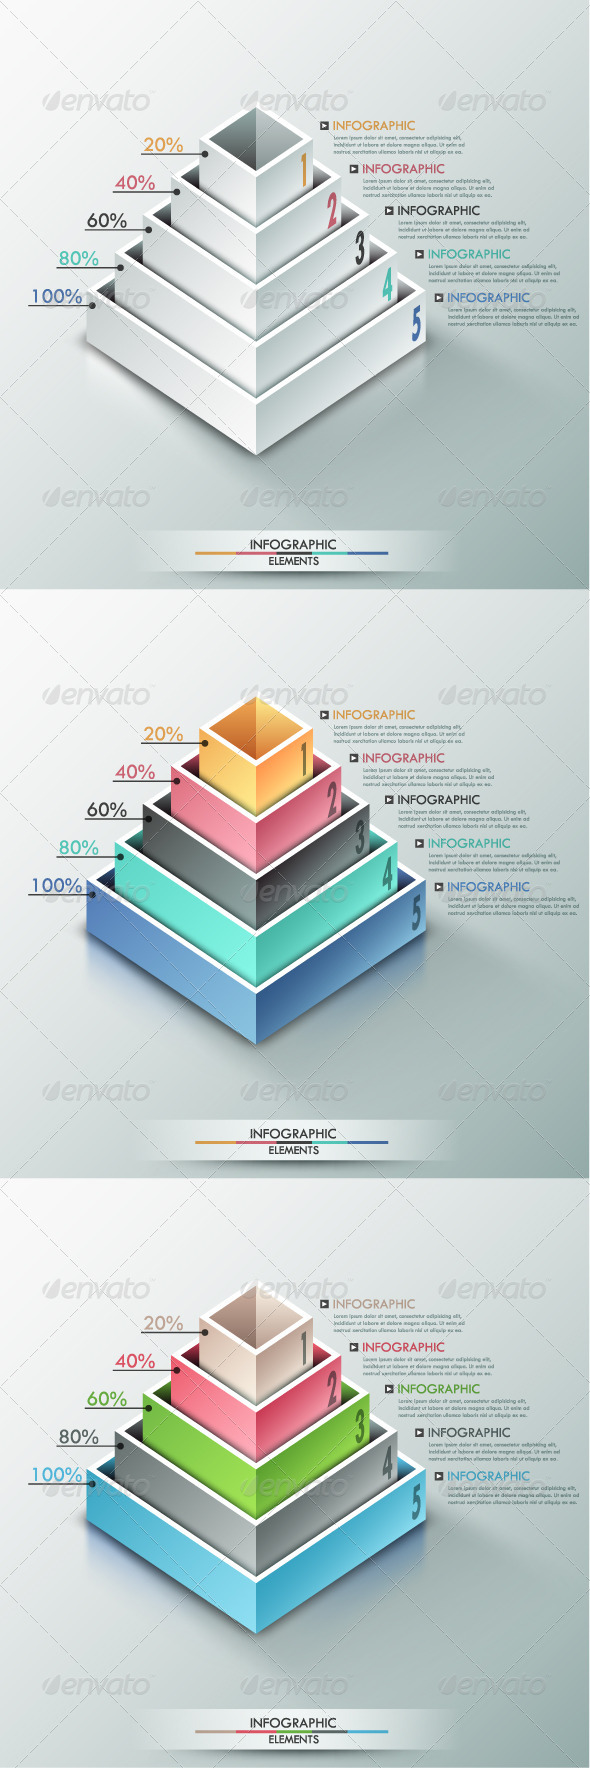 GraphicRiver Modern Infographic Options Banner 3 Versions 8050241